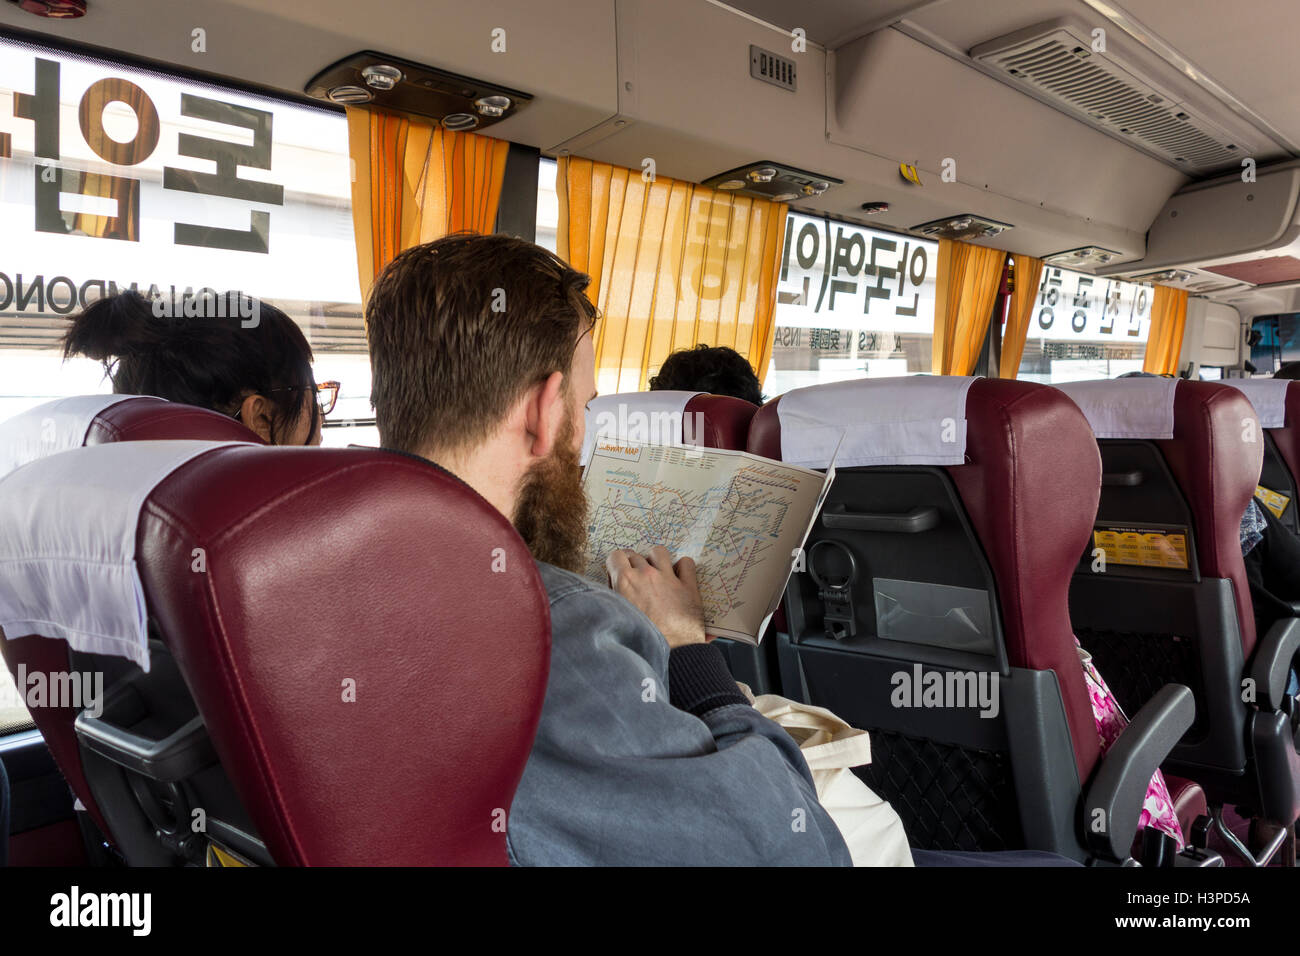 map reading comp with Stock Photo European Male Looking At Seoul Subway Map On Airport Shuttle Bus From 122809830 on Unit Three 1750 1914 in addition F 12 Pics furthermore J 20 Pics as well Stock Photo A Woodland Park Information Board And Map 23824860 additionally F 22 Pics.